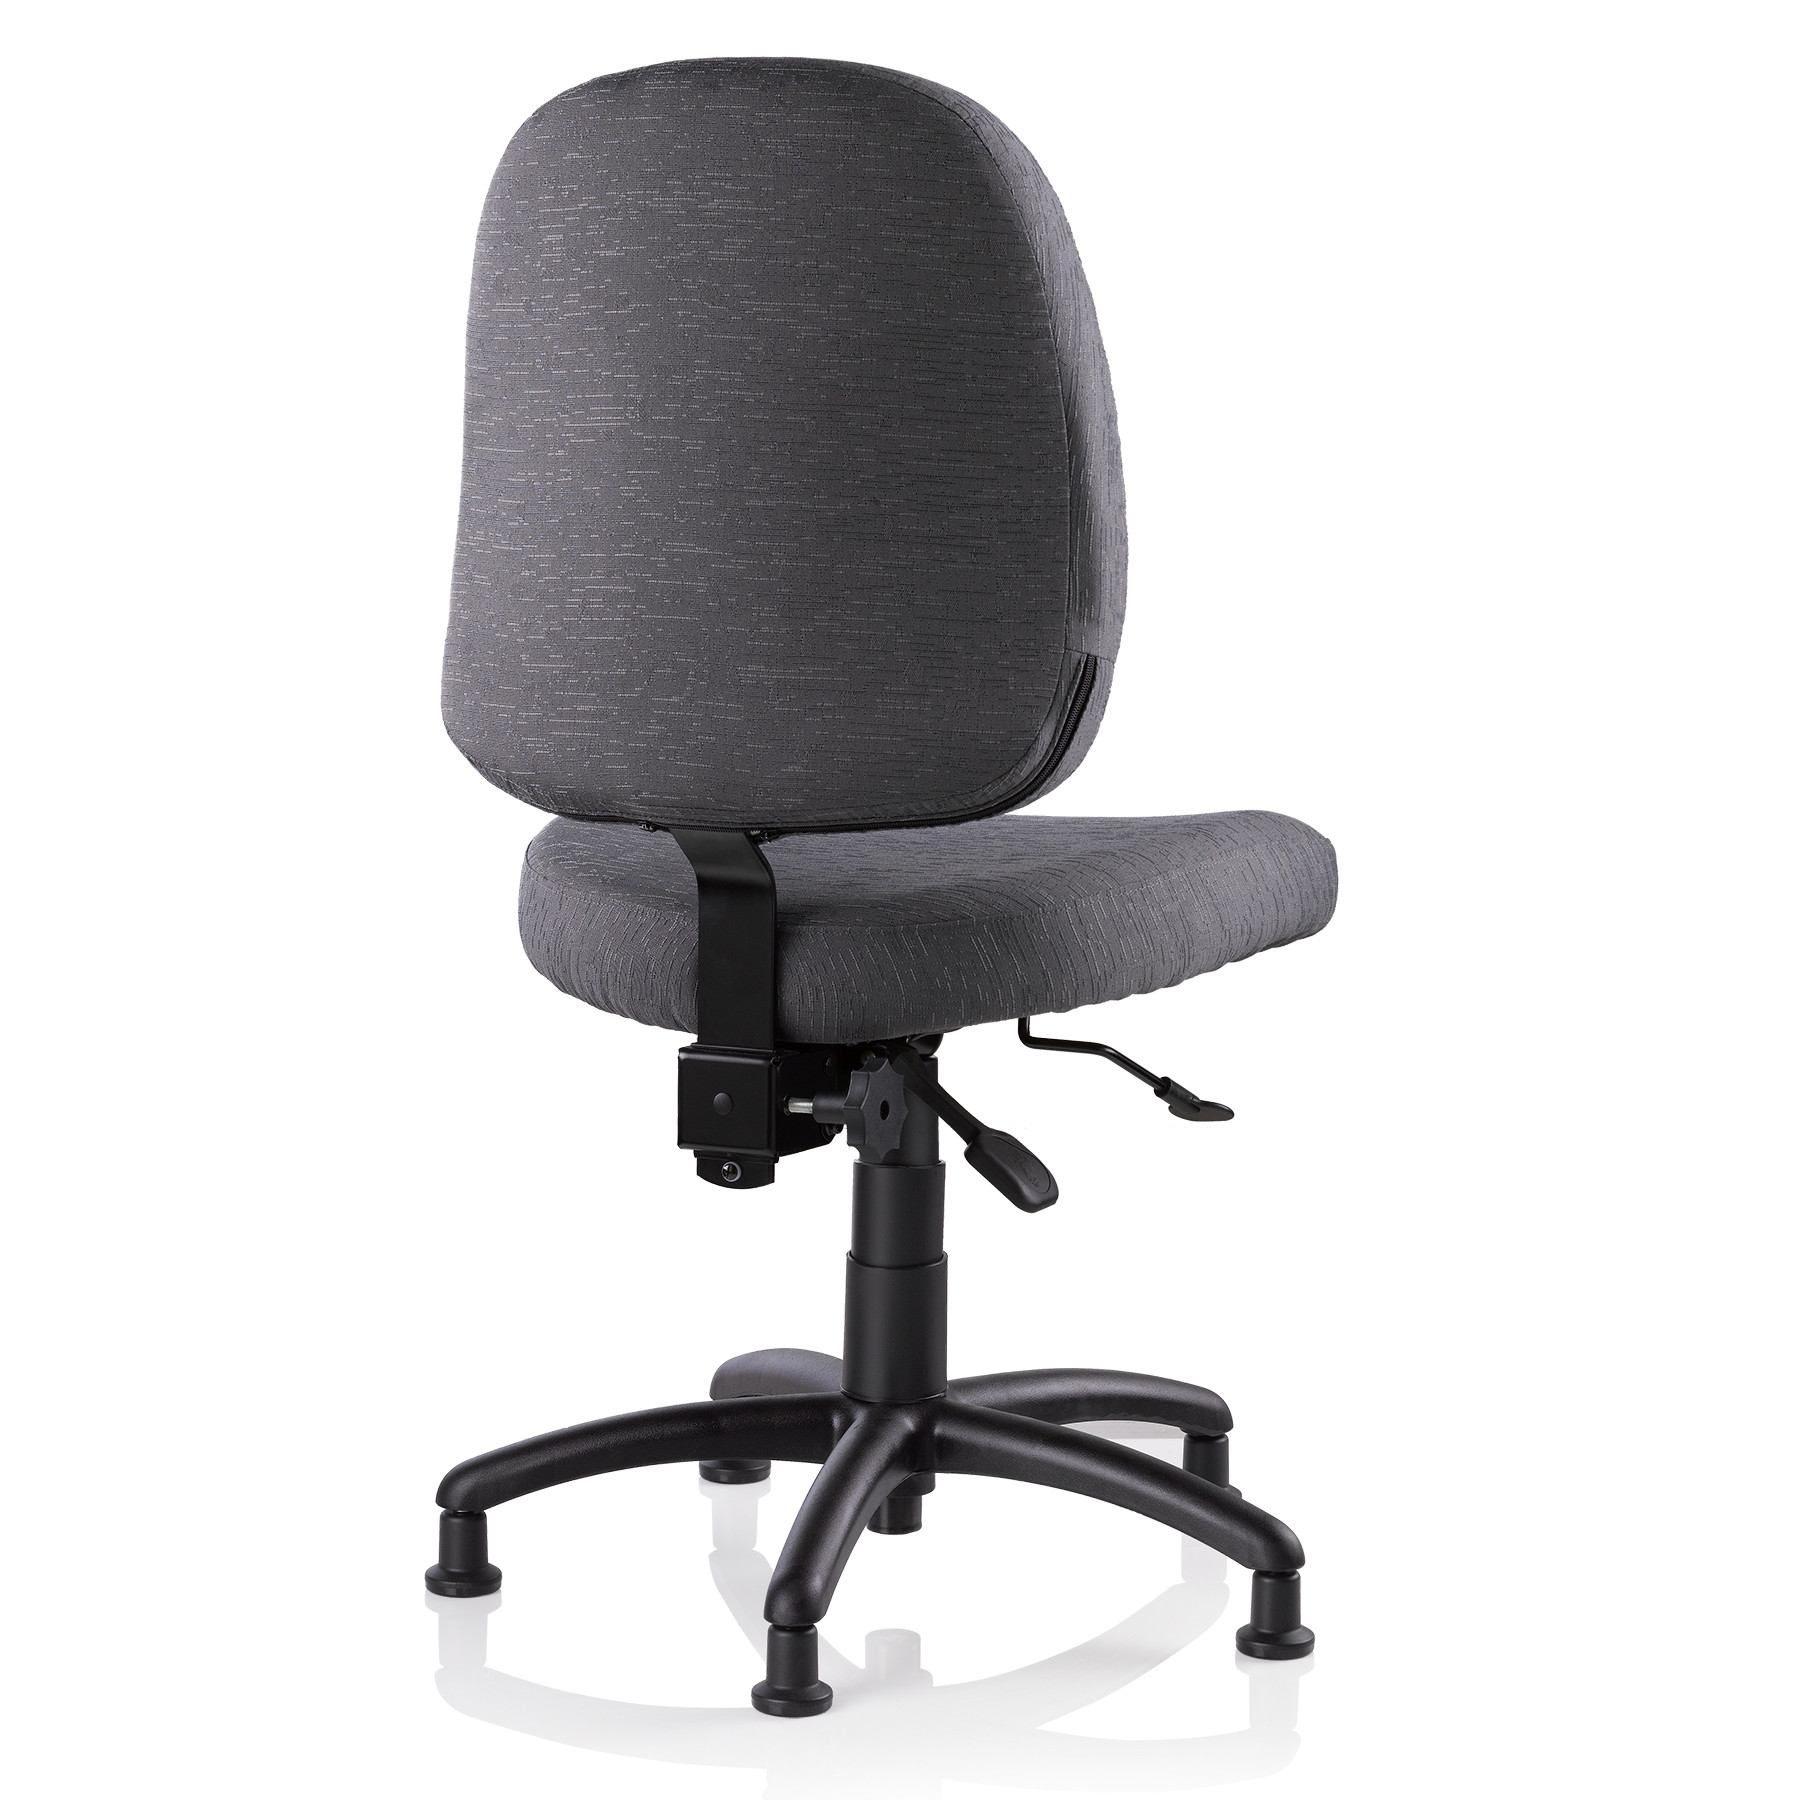 Reliable 200se Ergonomic Task Chair With Glides Made In Canada Walmart Com Walmart Com